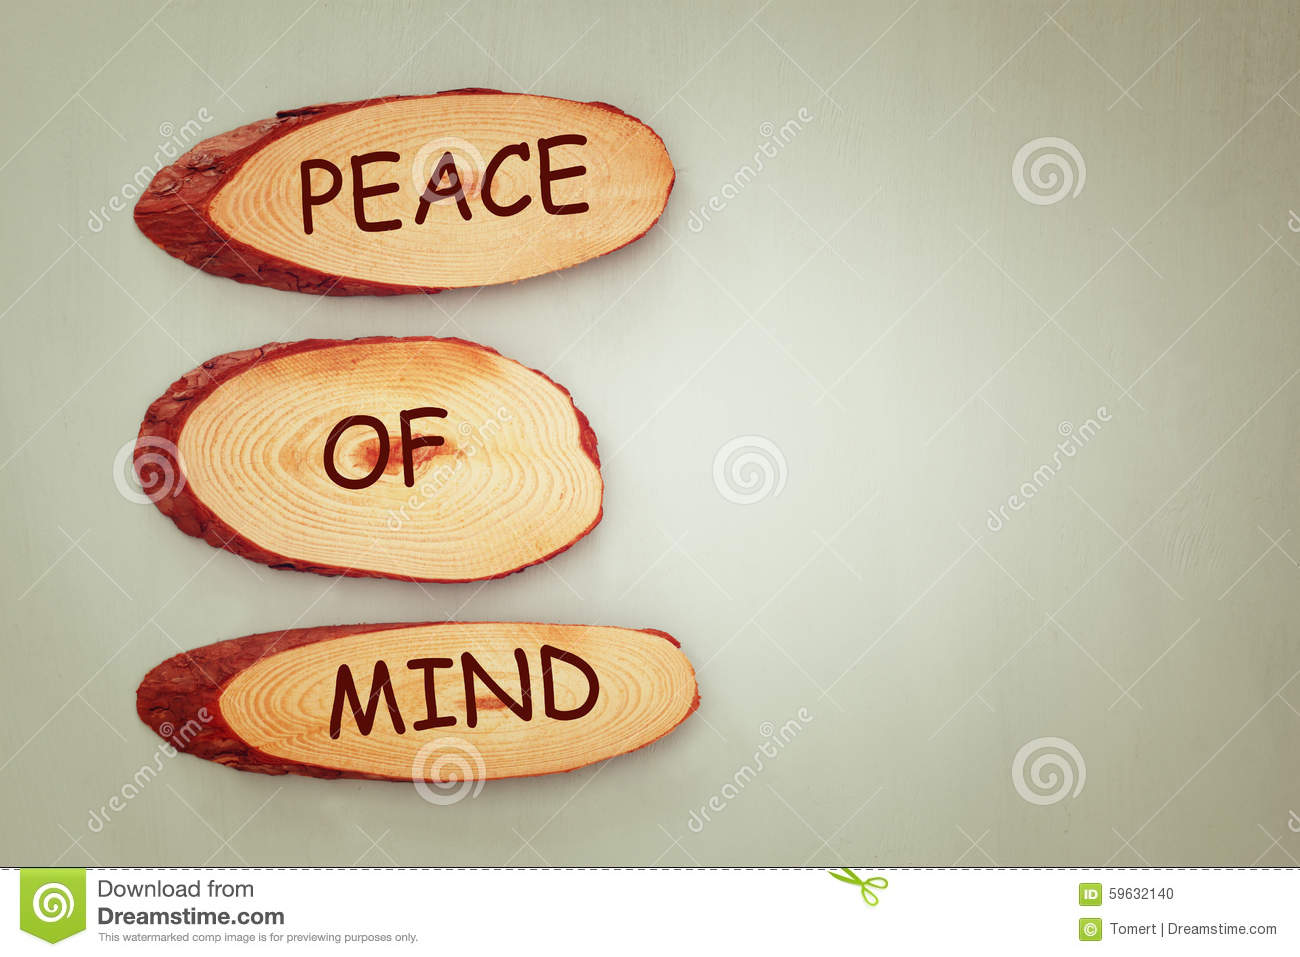 Top View Image Of Wooden Signs With The Text Peace Of Mind Stock